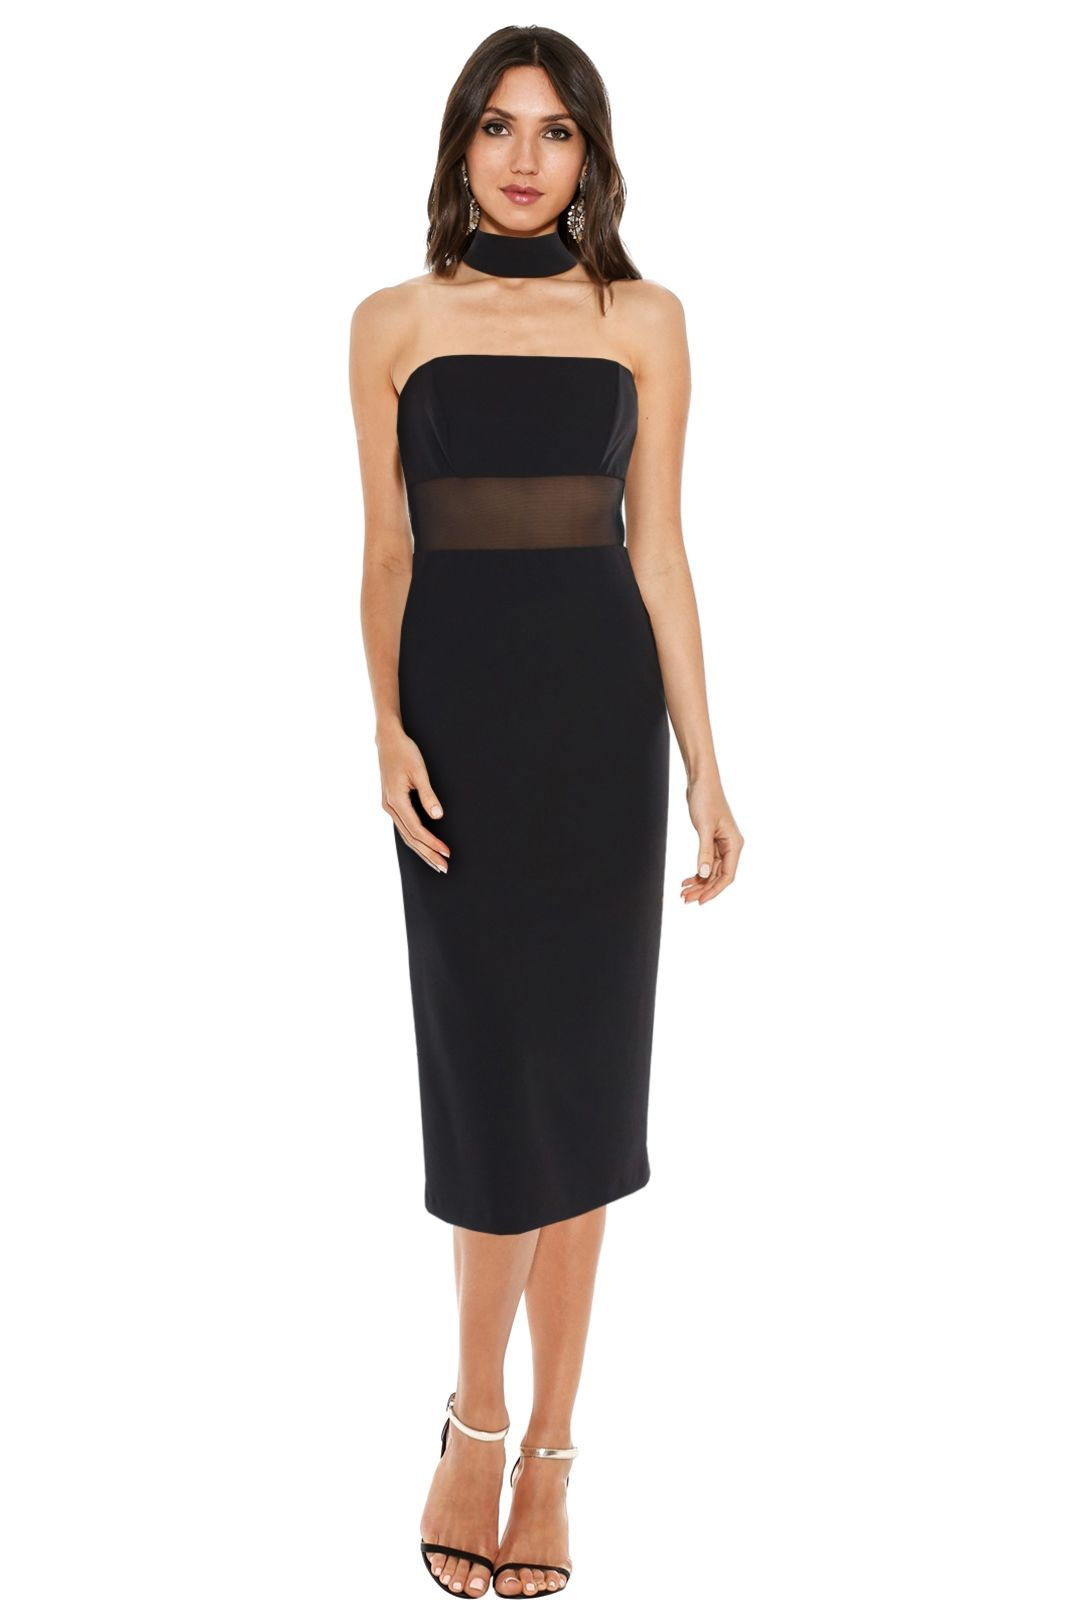 ABS by Allen Schwartz - Olivia Cocktail Dress - Black - Front